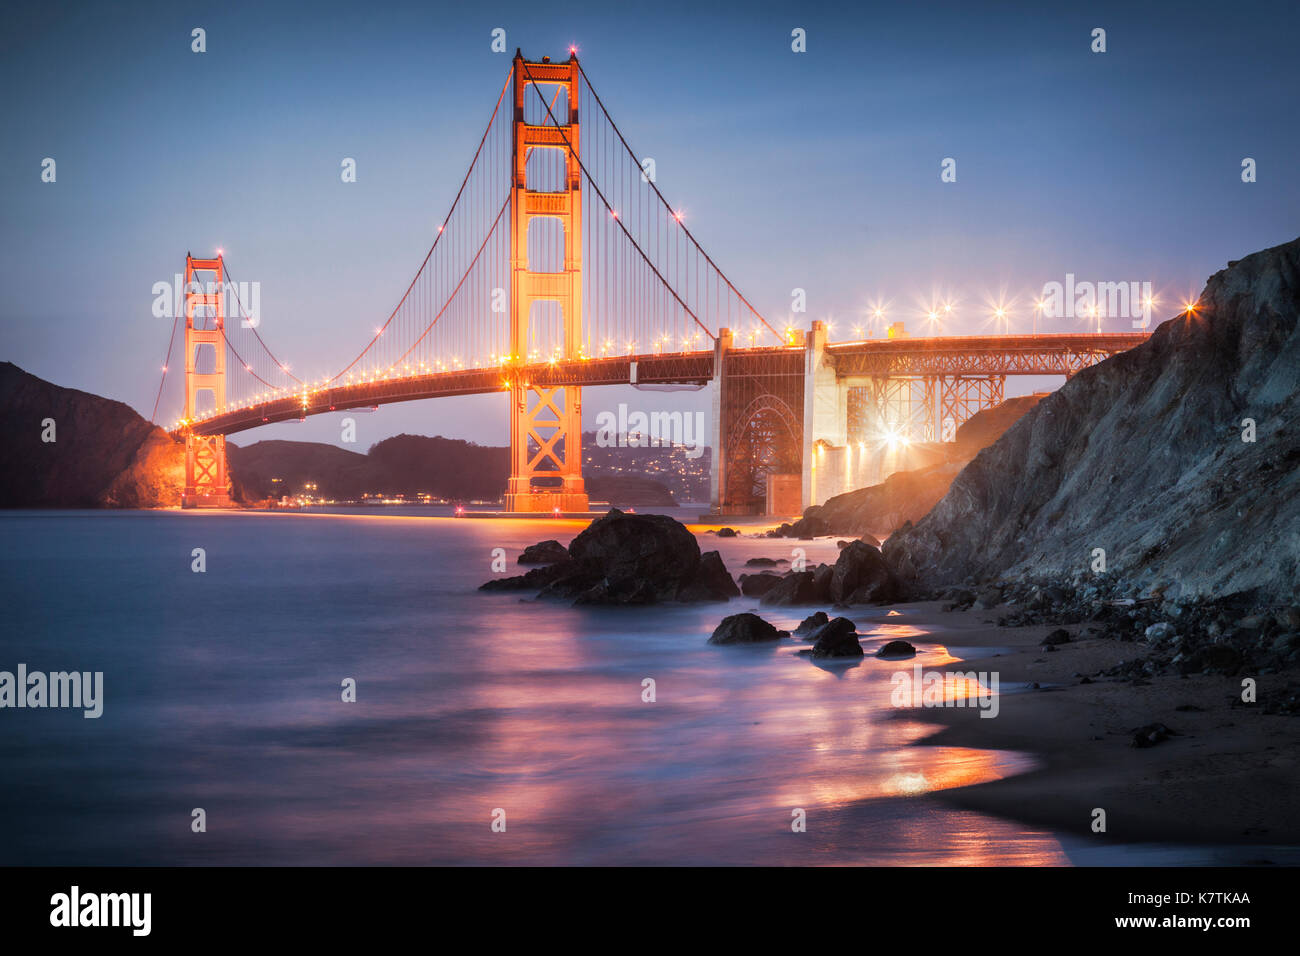 Le Golden Gate Bridge, San Francisco, allumé après le coucher du soleil. Photo Stock